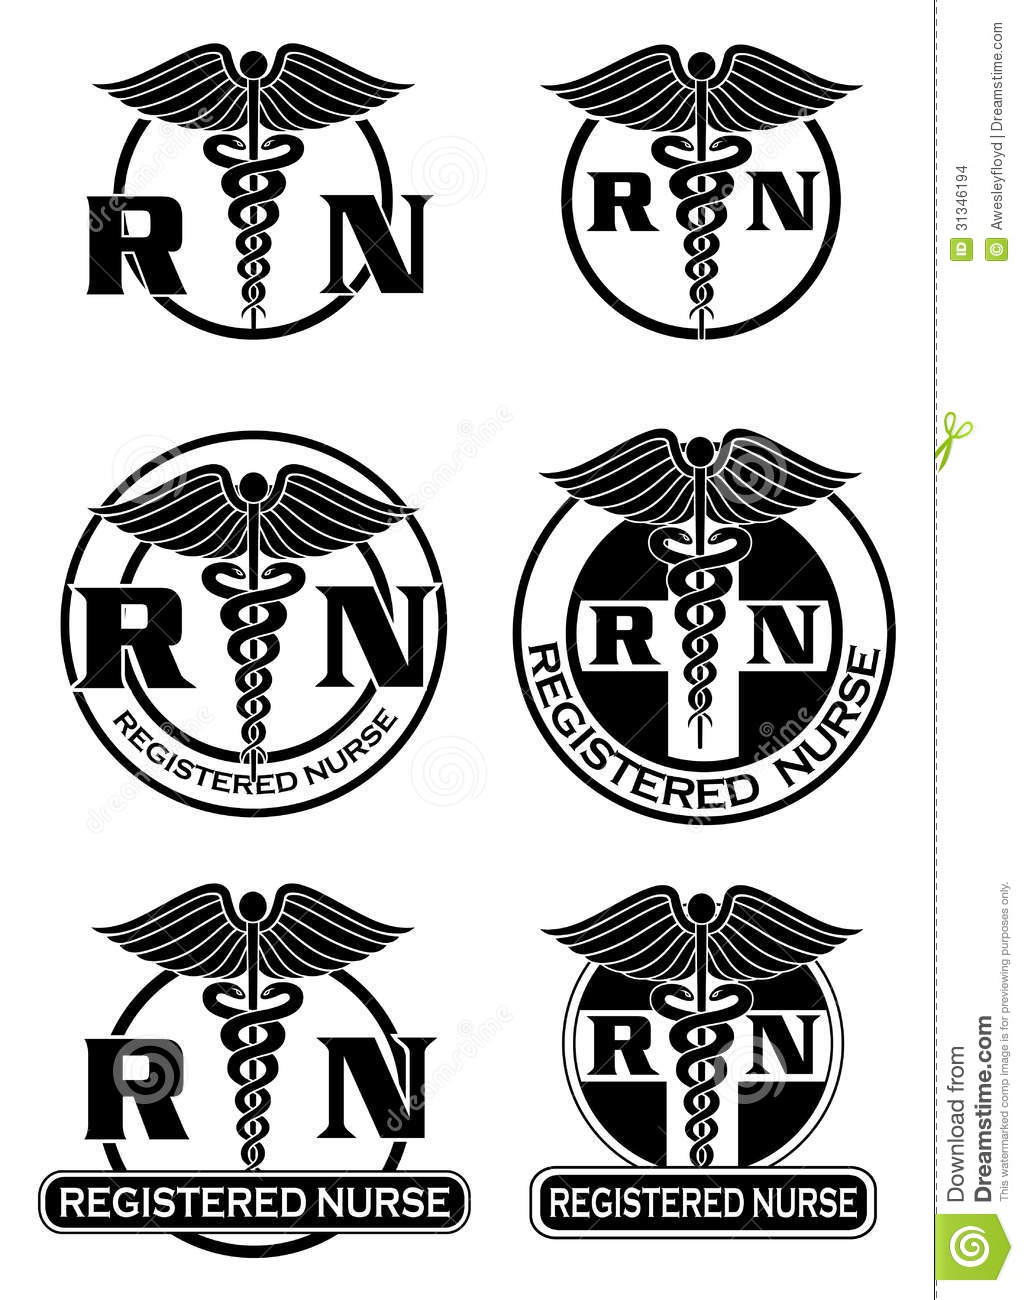 Registered Nurse Designs Graphic Style Stock Vector Illustration